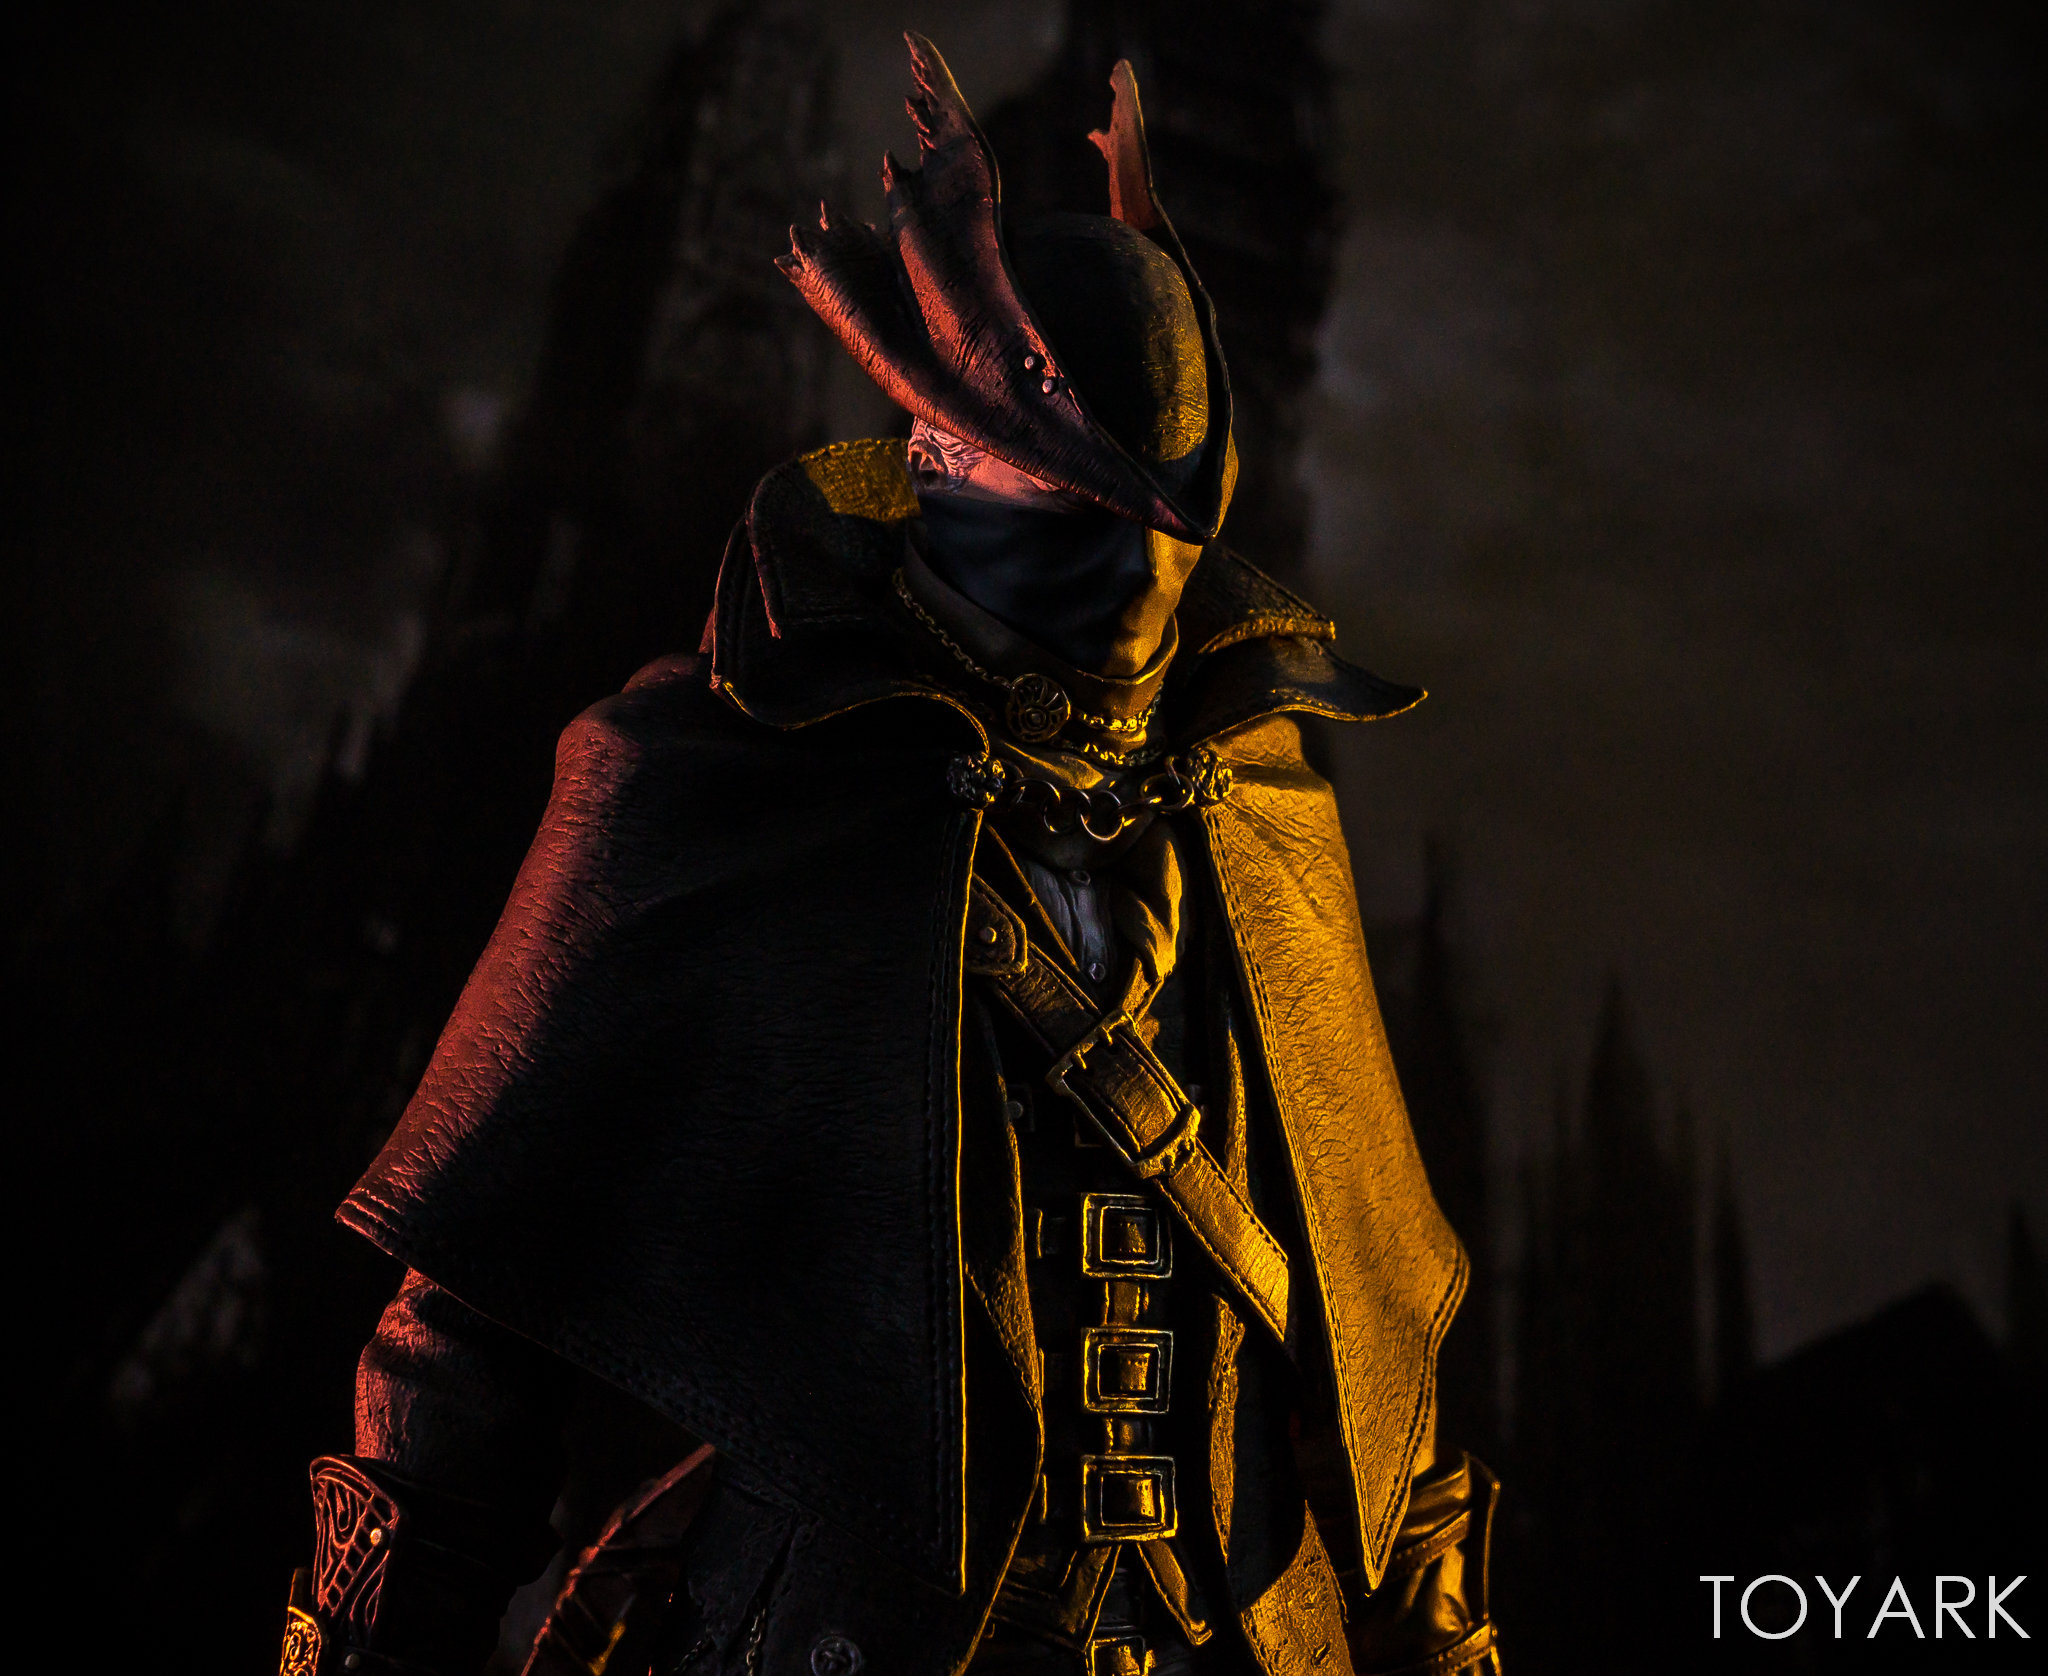 https://news.toyark.com/wp-content/uploads/sites/4/2018/07/Gecco-Bloodborne-Old-Hunter-027.jpg